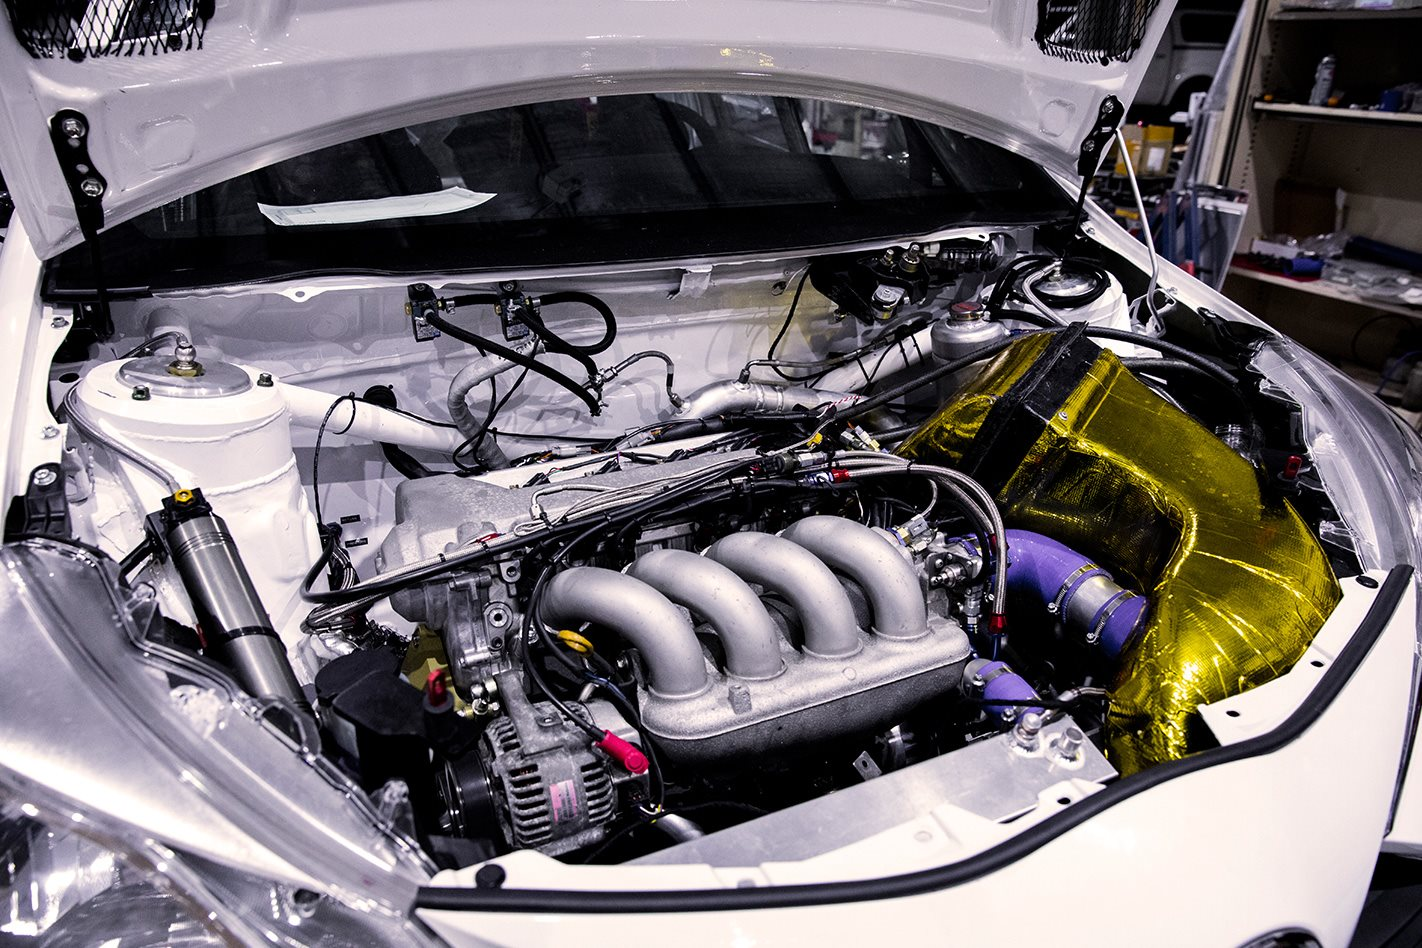 Toyota-Yaris-AP4-rally-car-engine.jpg